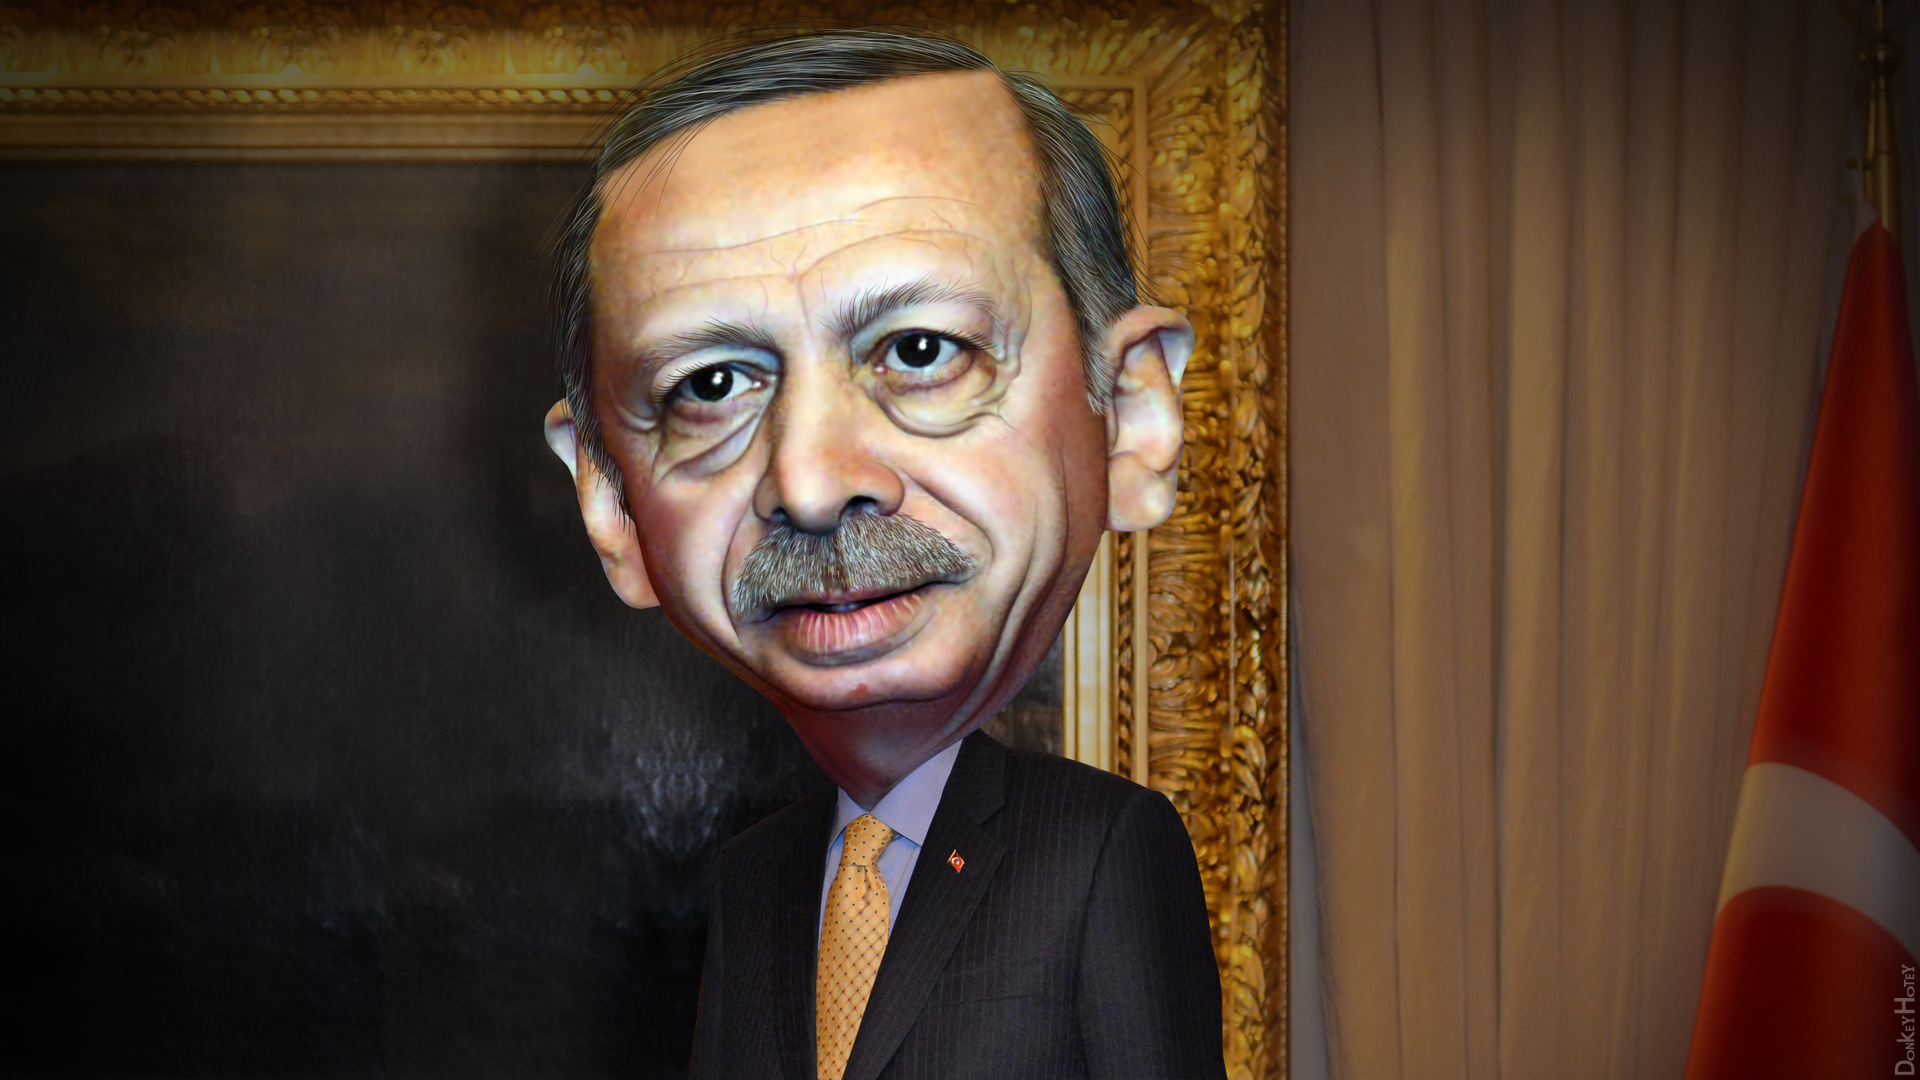 Recep Tayyip Erdogan (Illustration by Donkey Hotey / Flickr